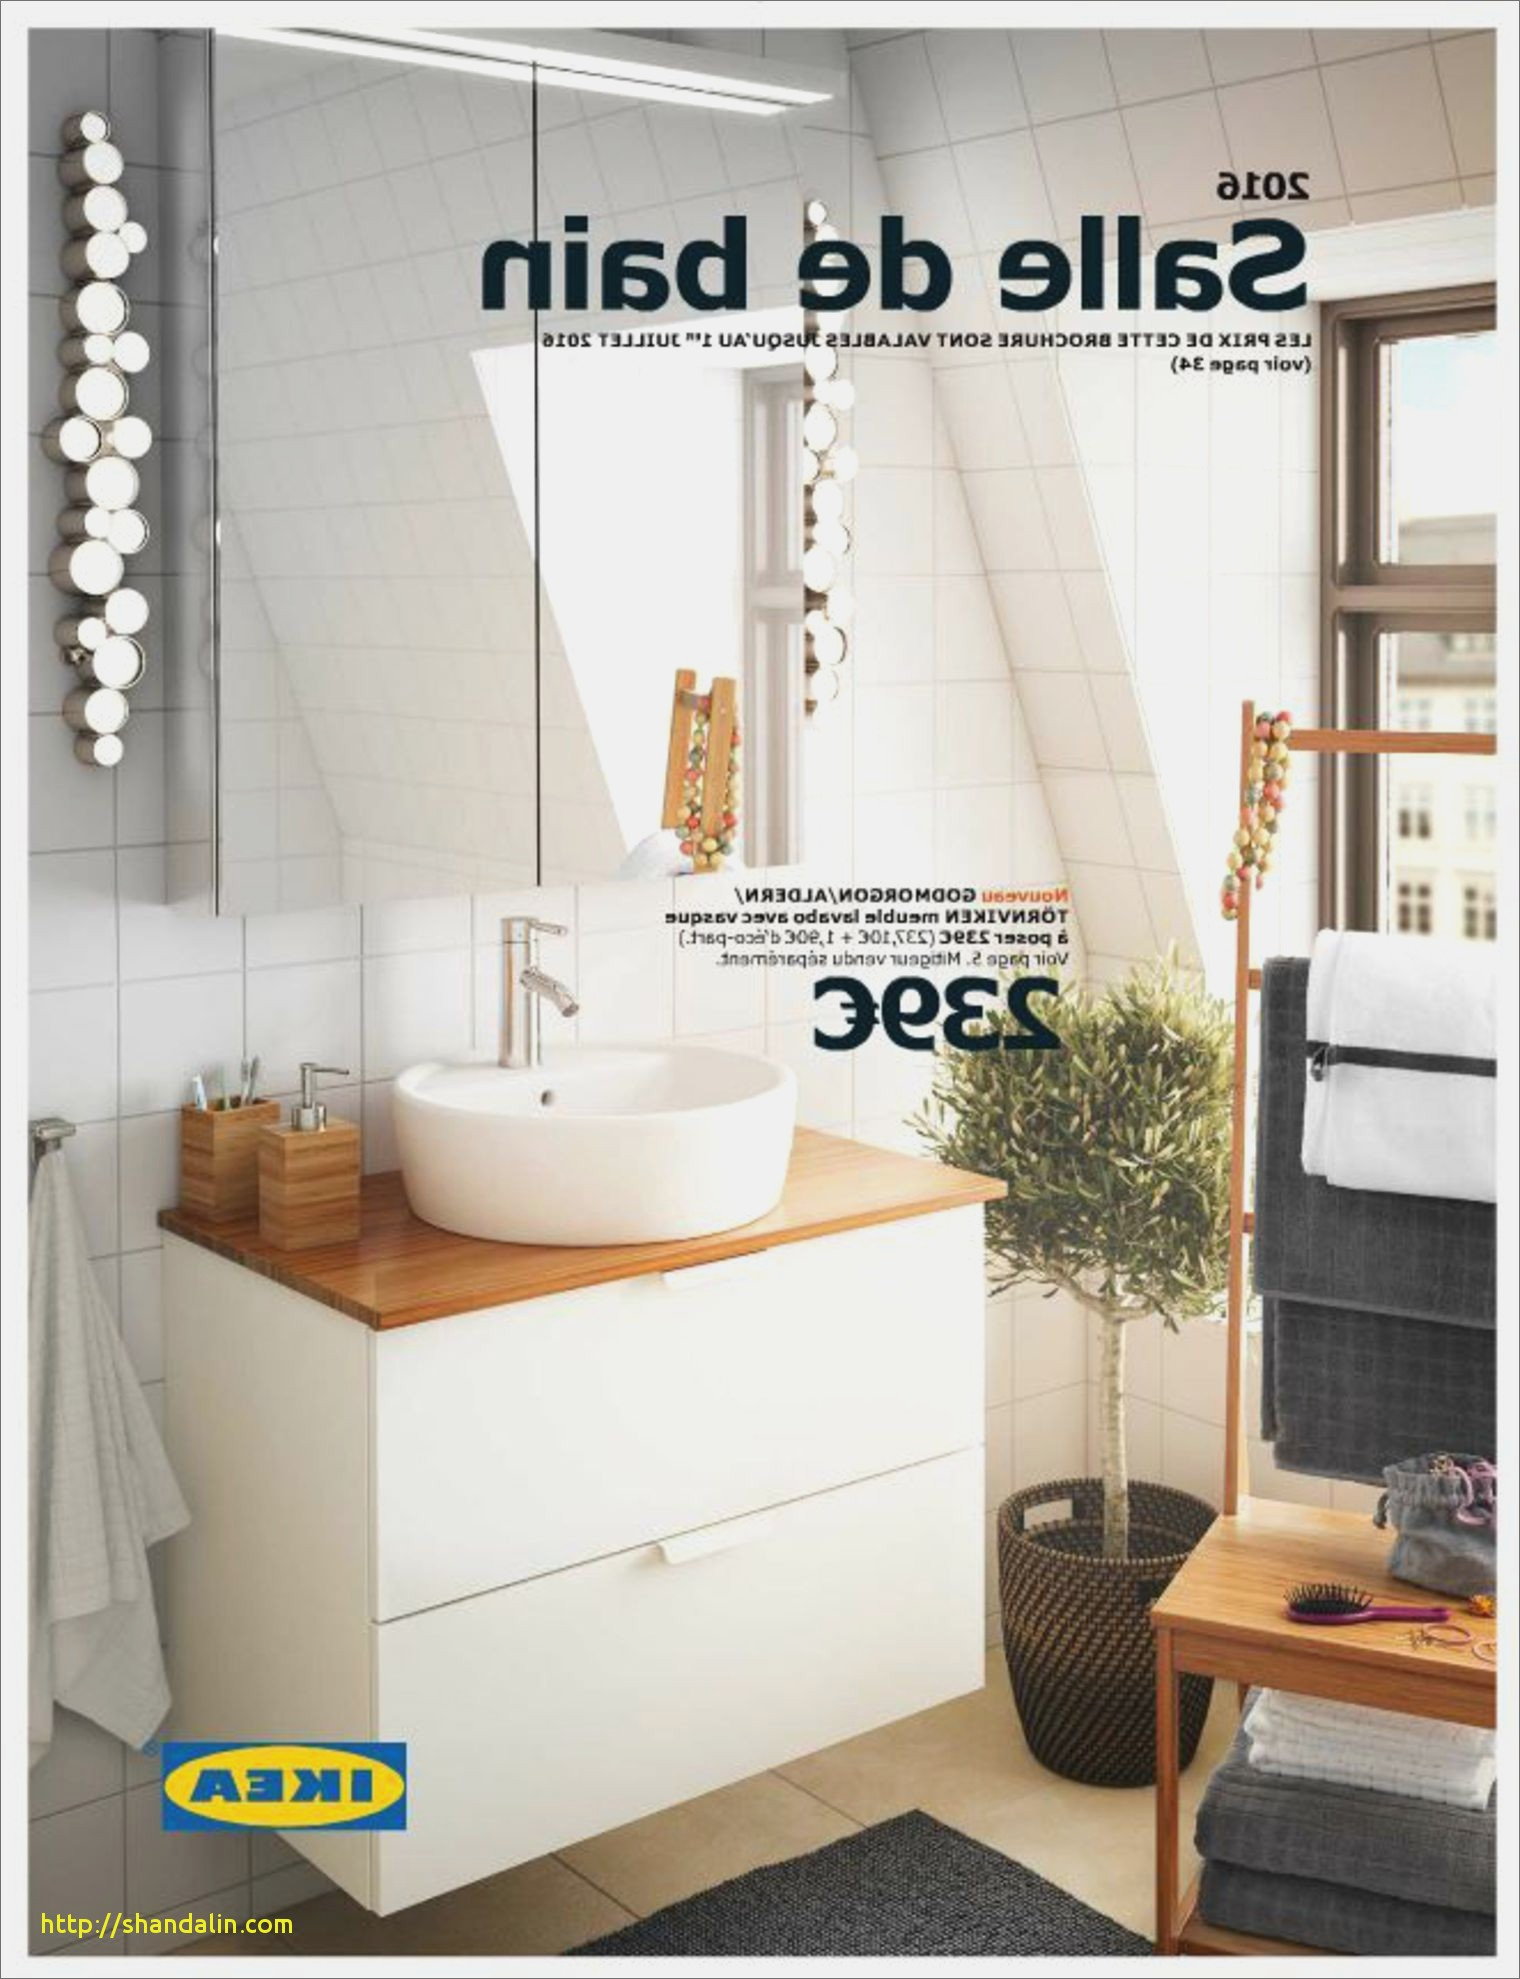 Vasque Encastrable Salle De Bain Ikea Beau Images Article with Tag Double Vasque Chez Ikea